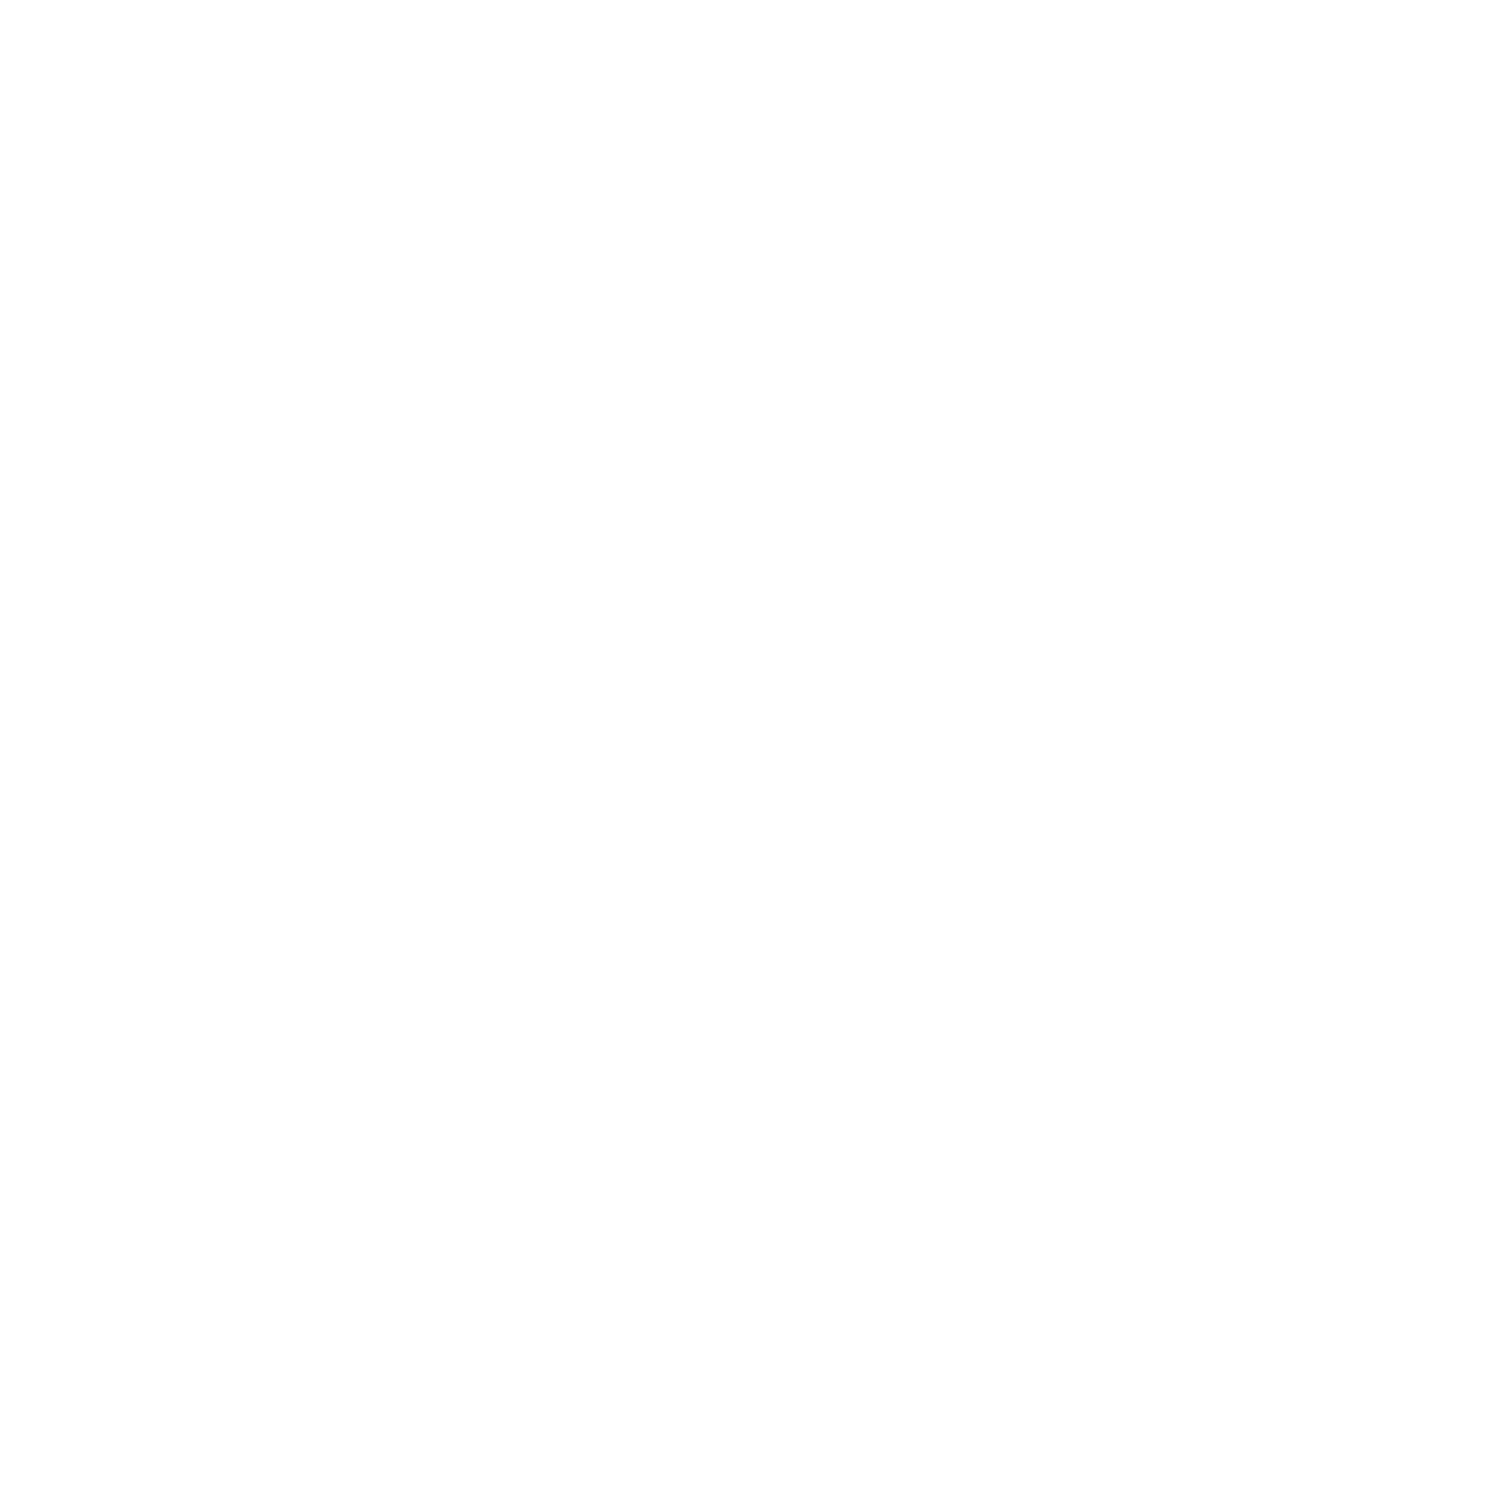 ANGEL KING